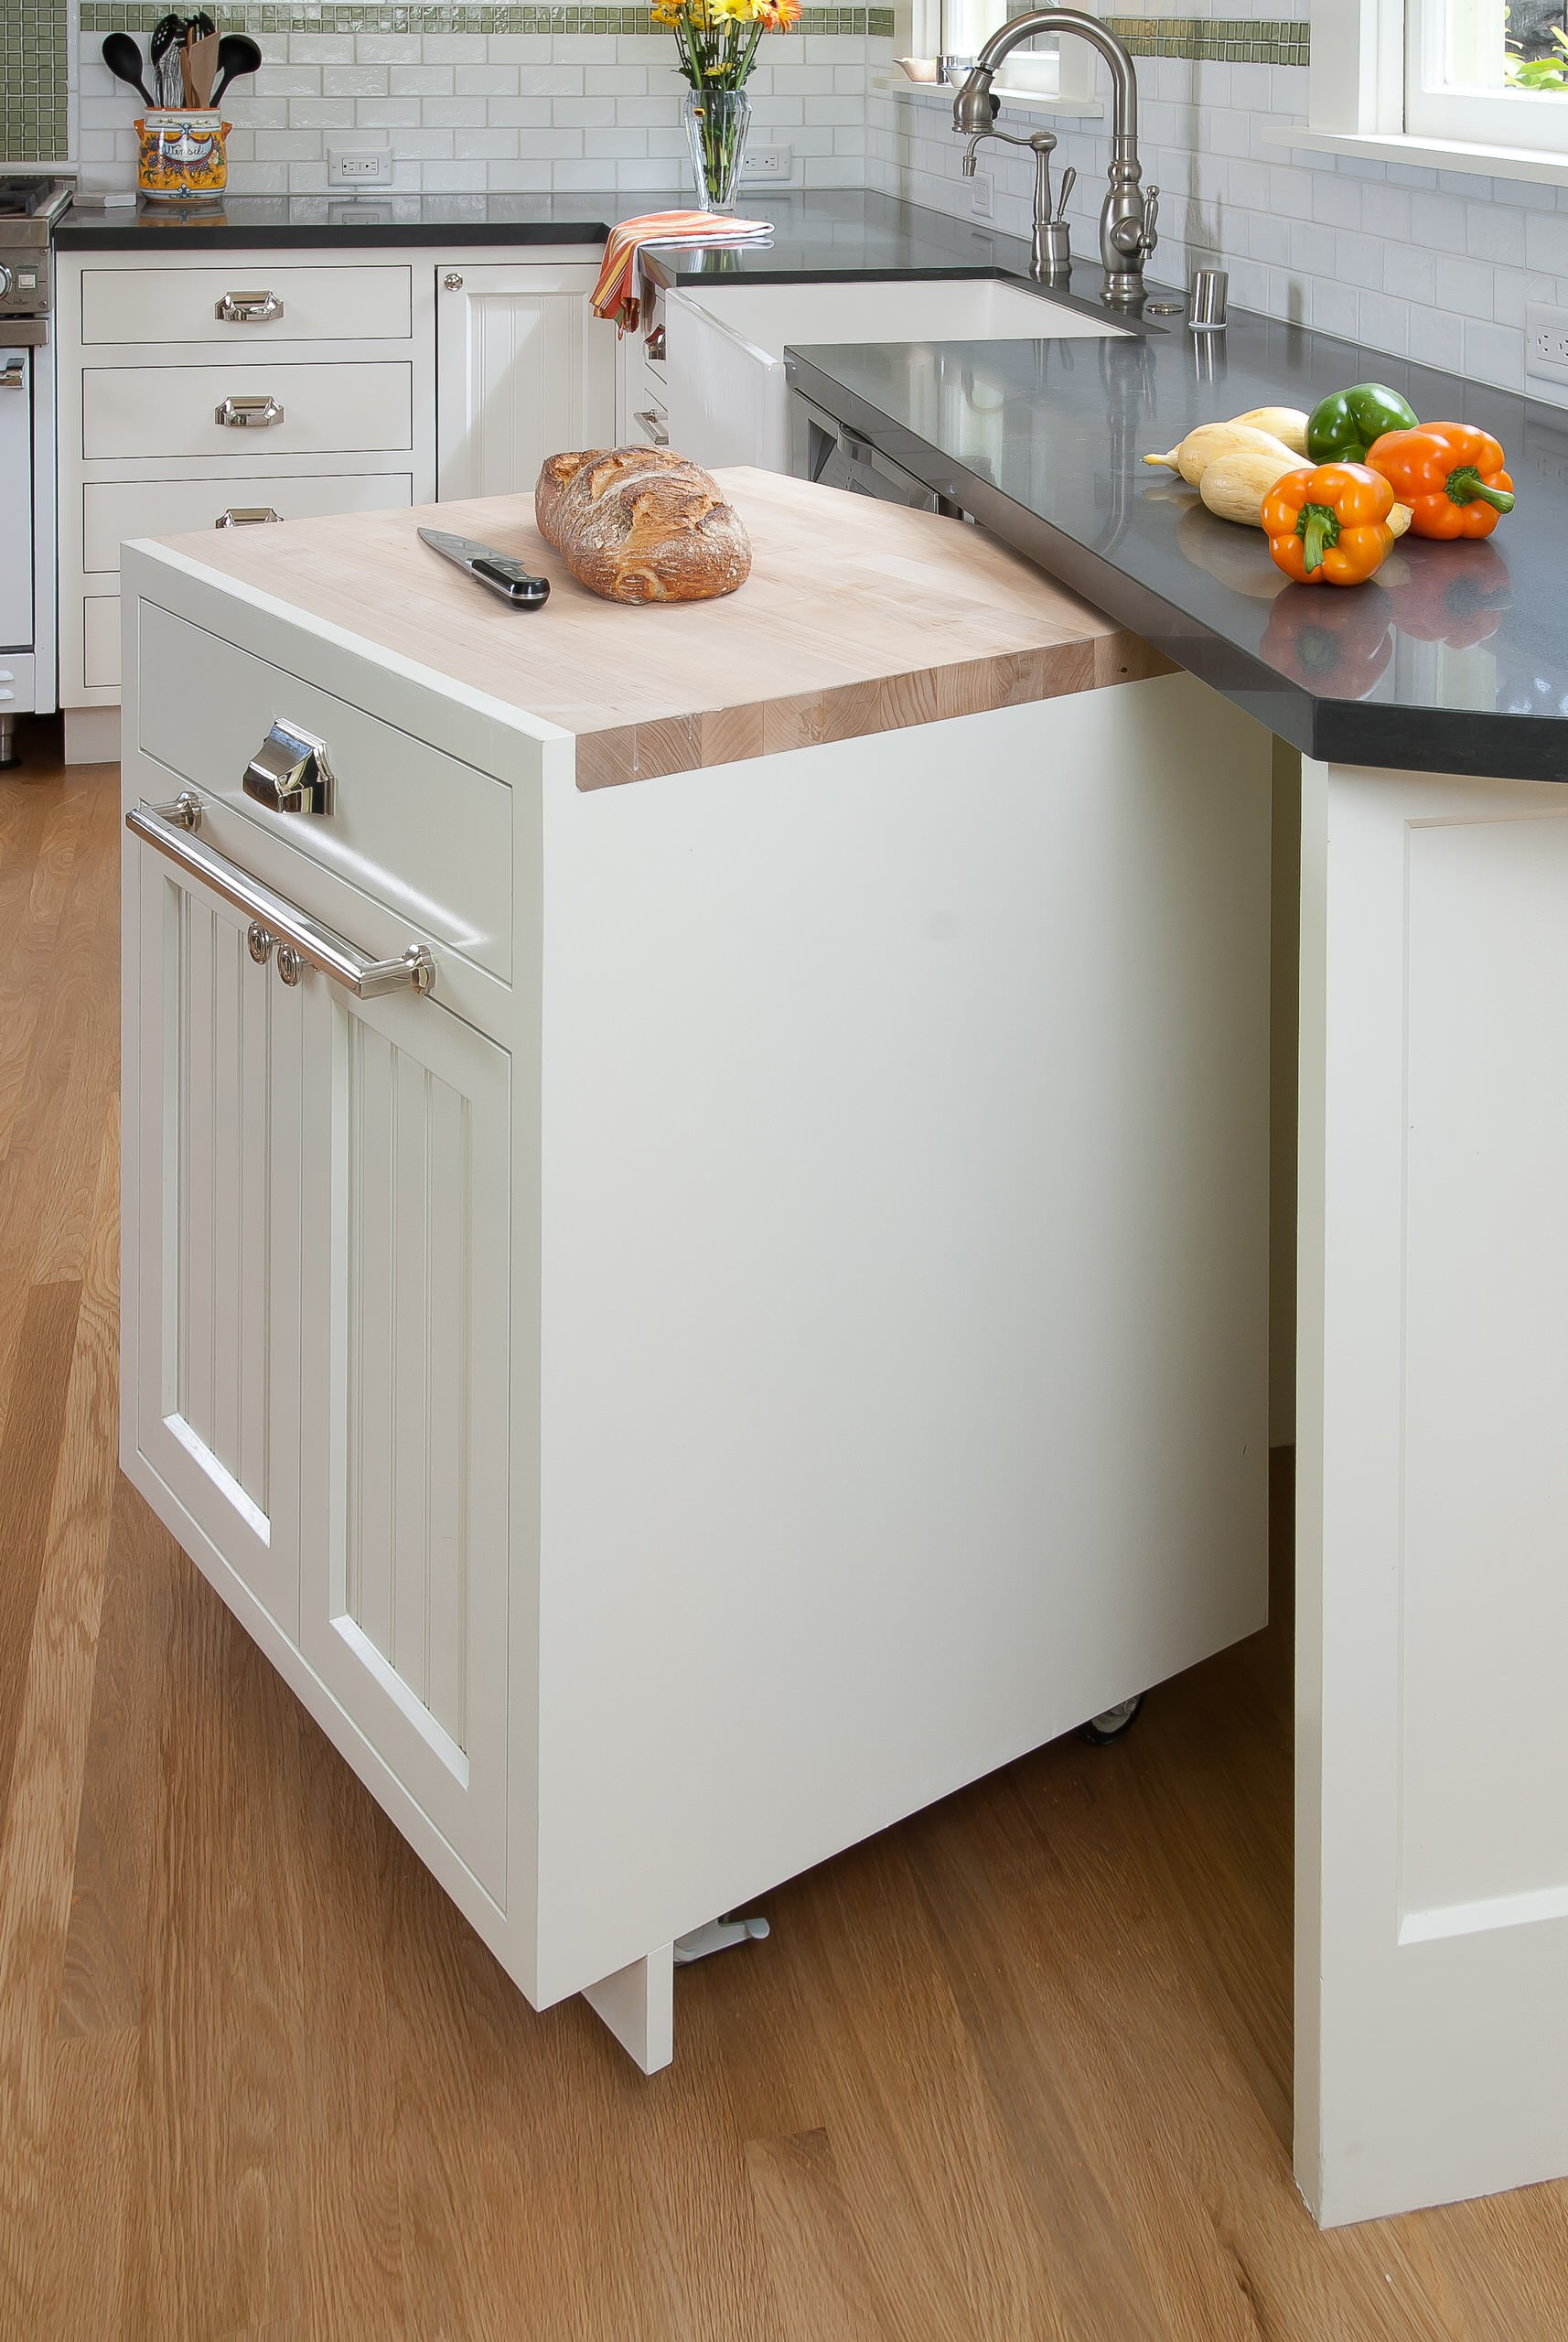 Installation-of-side-out-prep-station 80+ Unusual Kitchen Design Ideas for Small Spaces in 2021